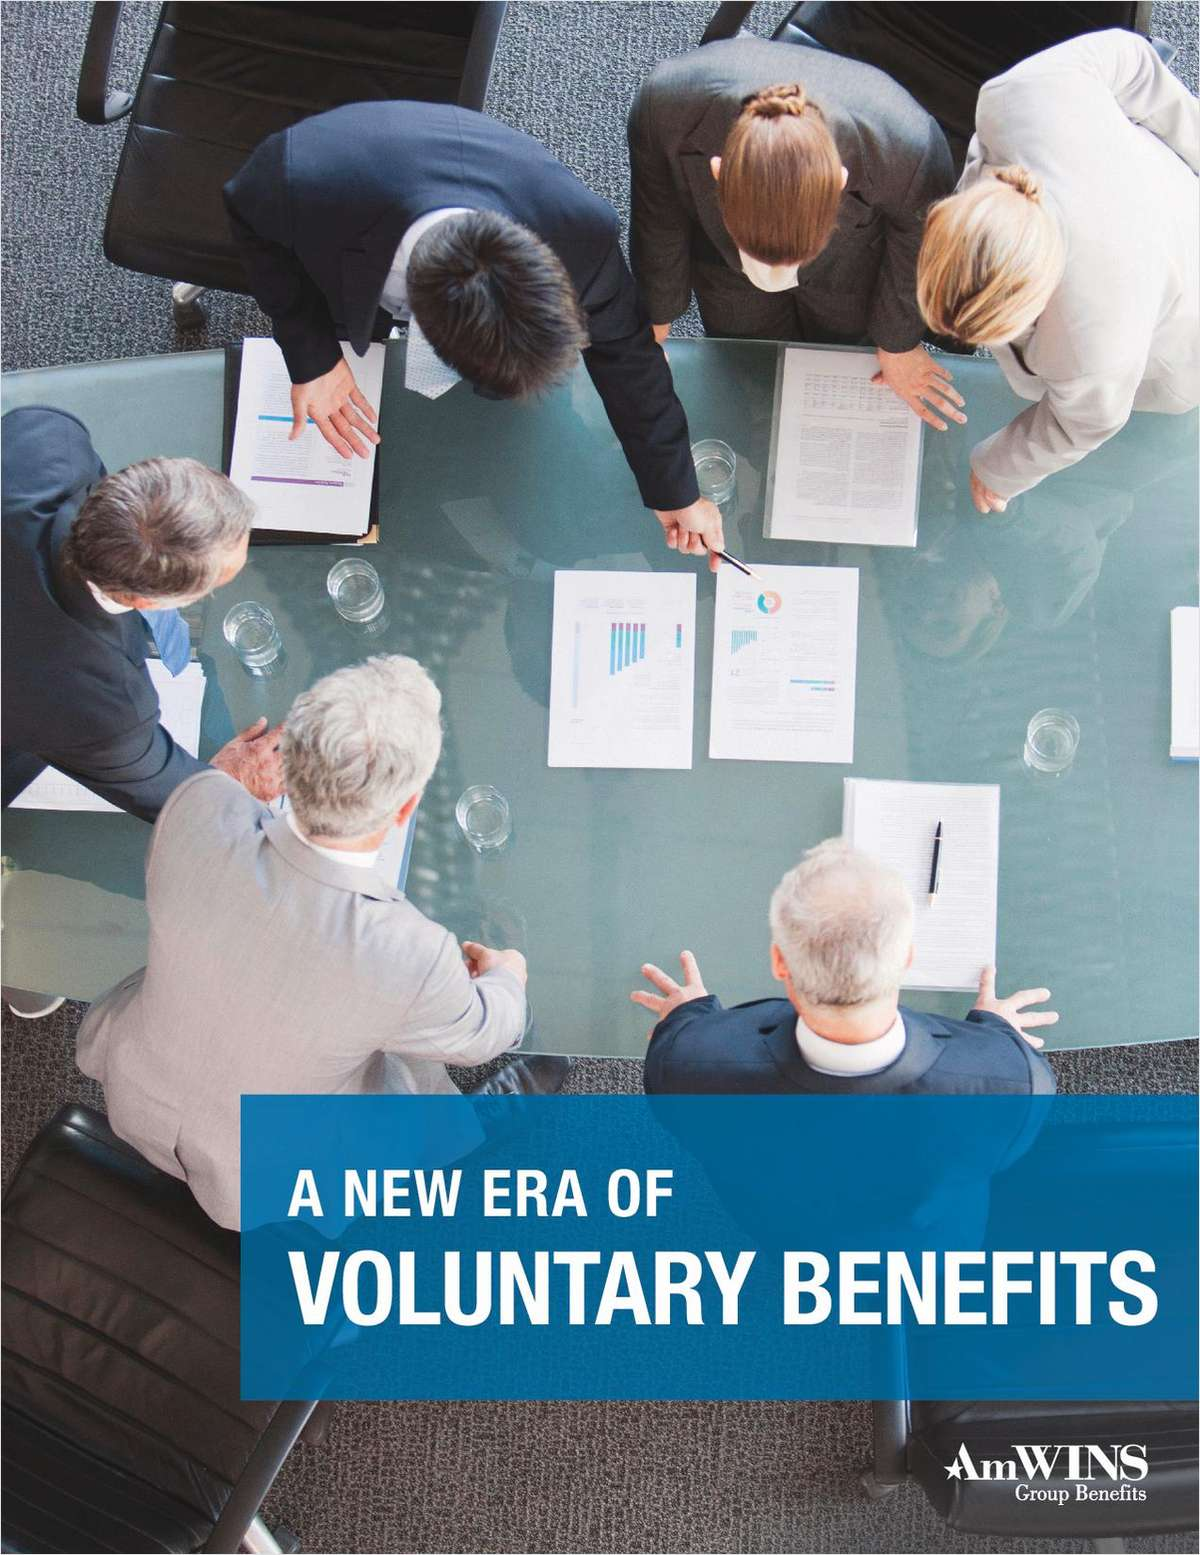 A New Era of Voluntary Benefits